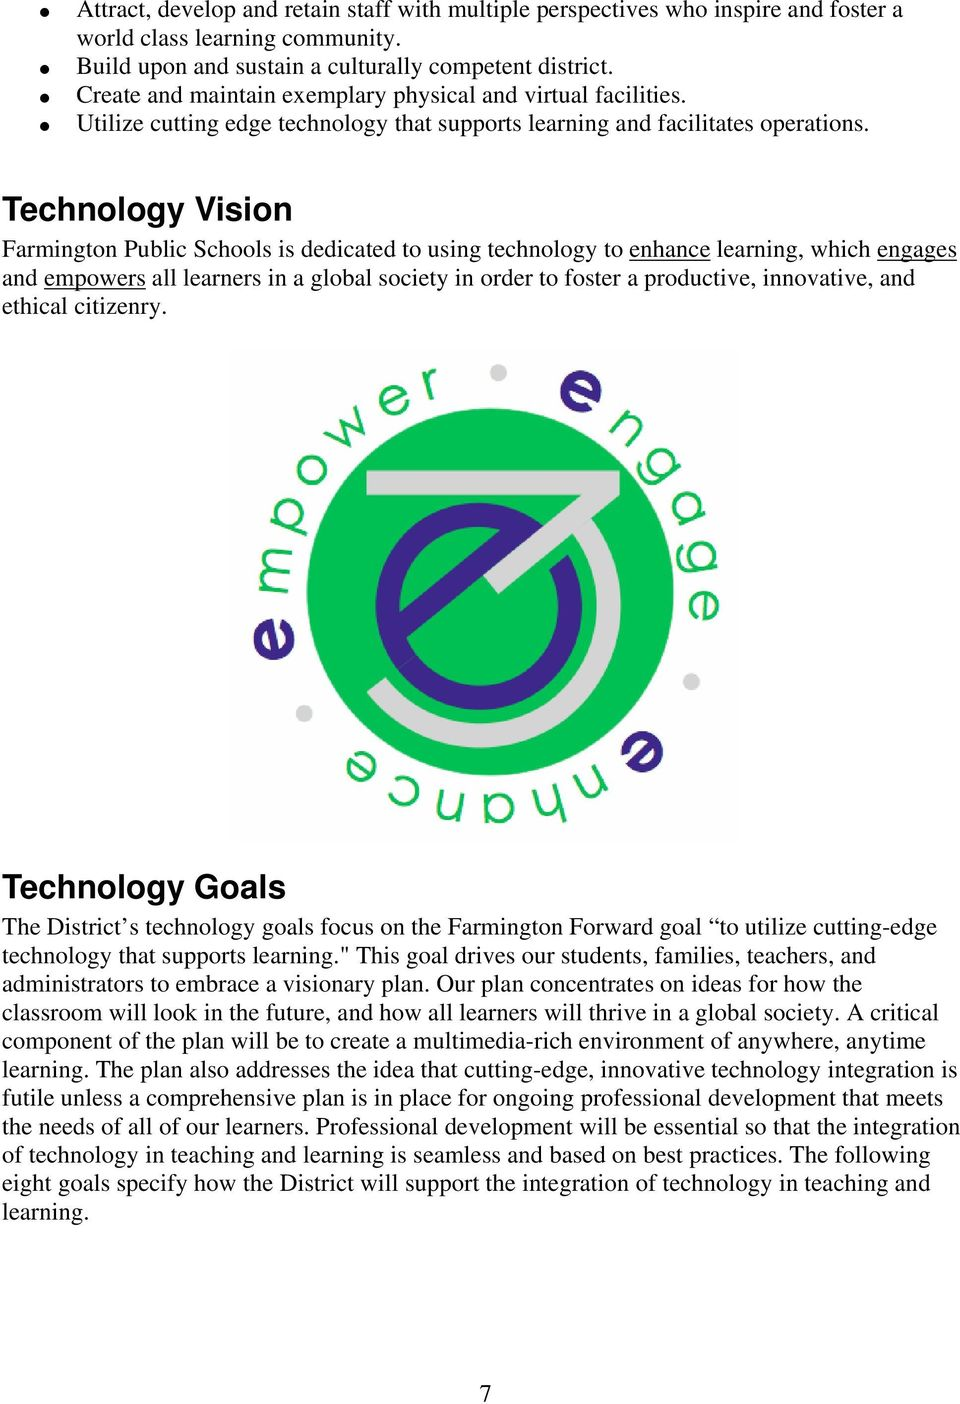 Technology Vision Farmington Public Schools is dedicated to using technology to enhance learning, which engages and empowers all learners in a global society in order to foster a productive,